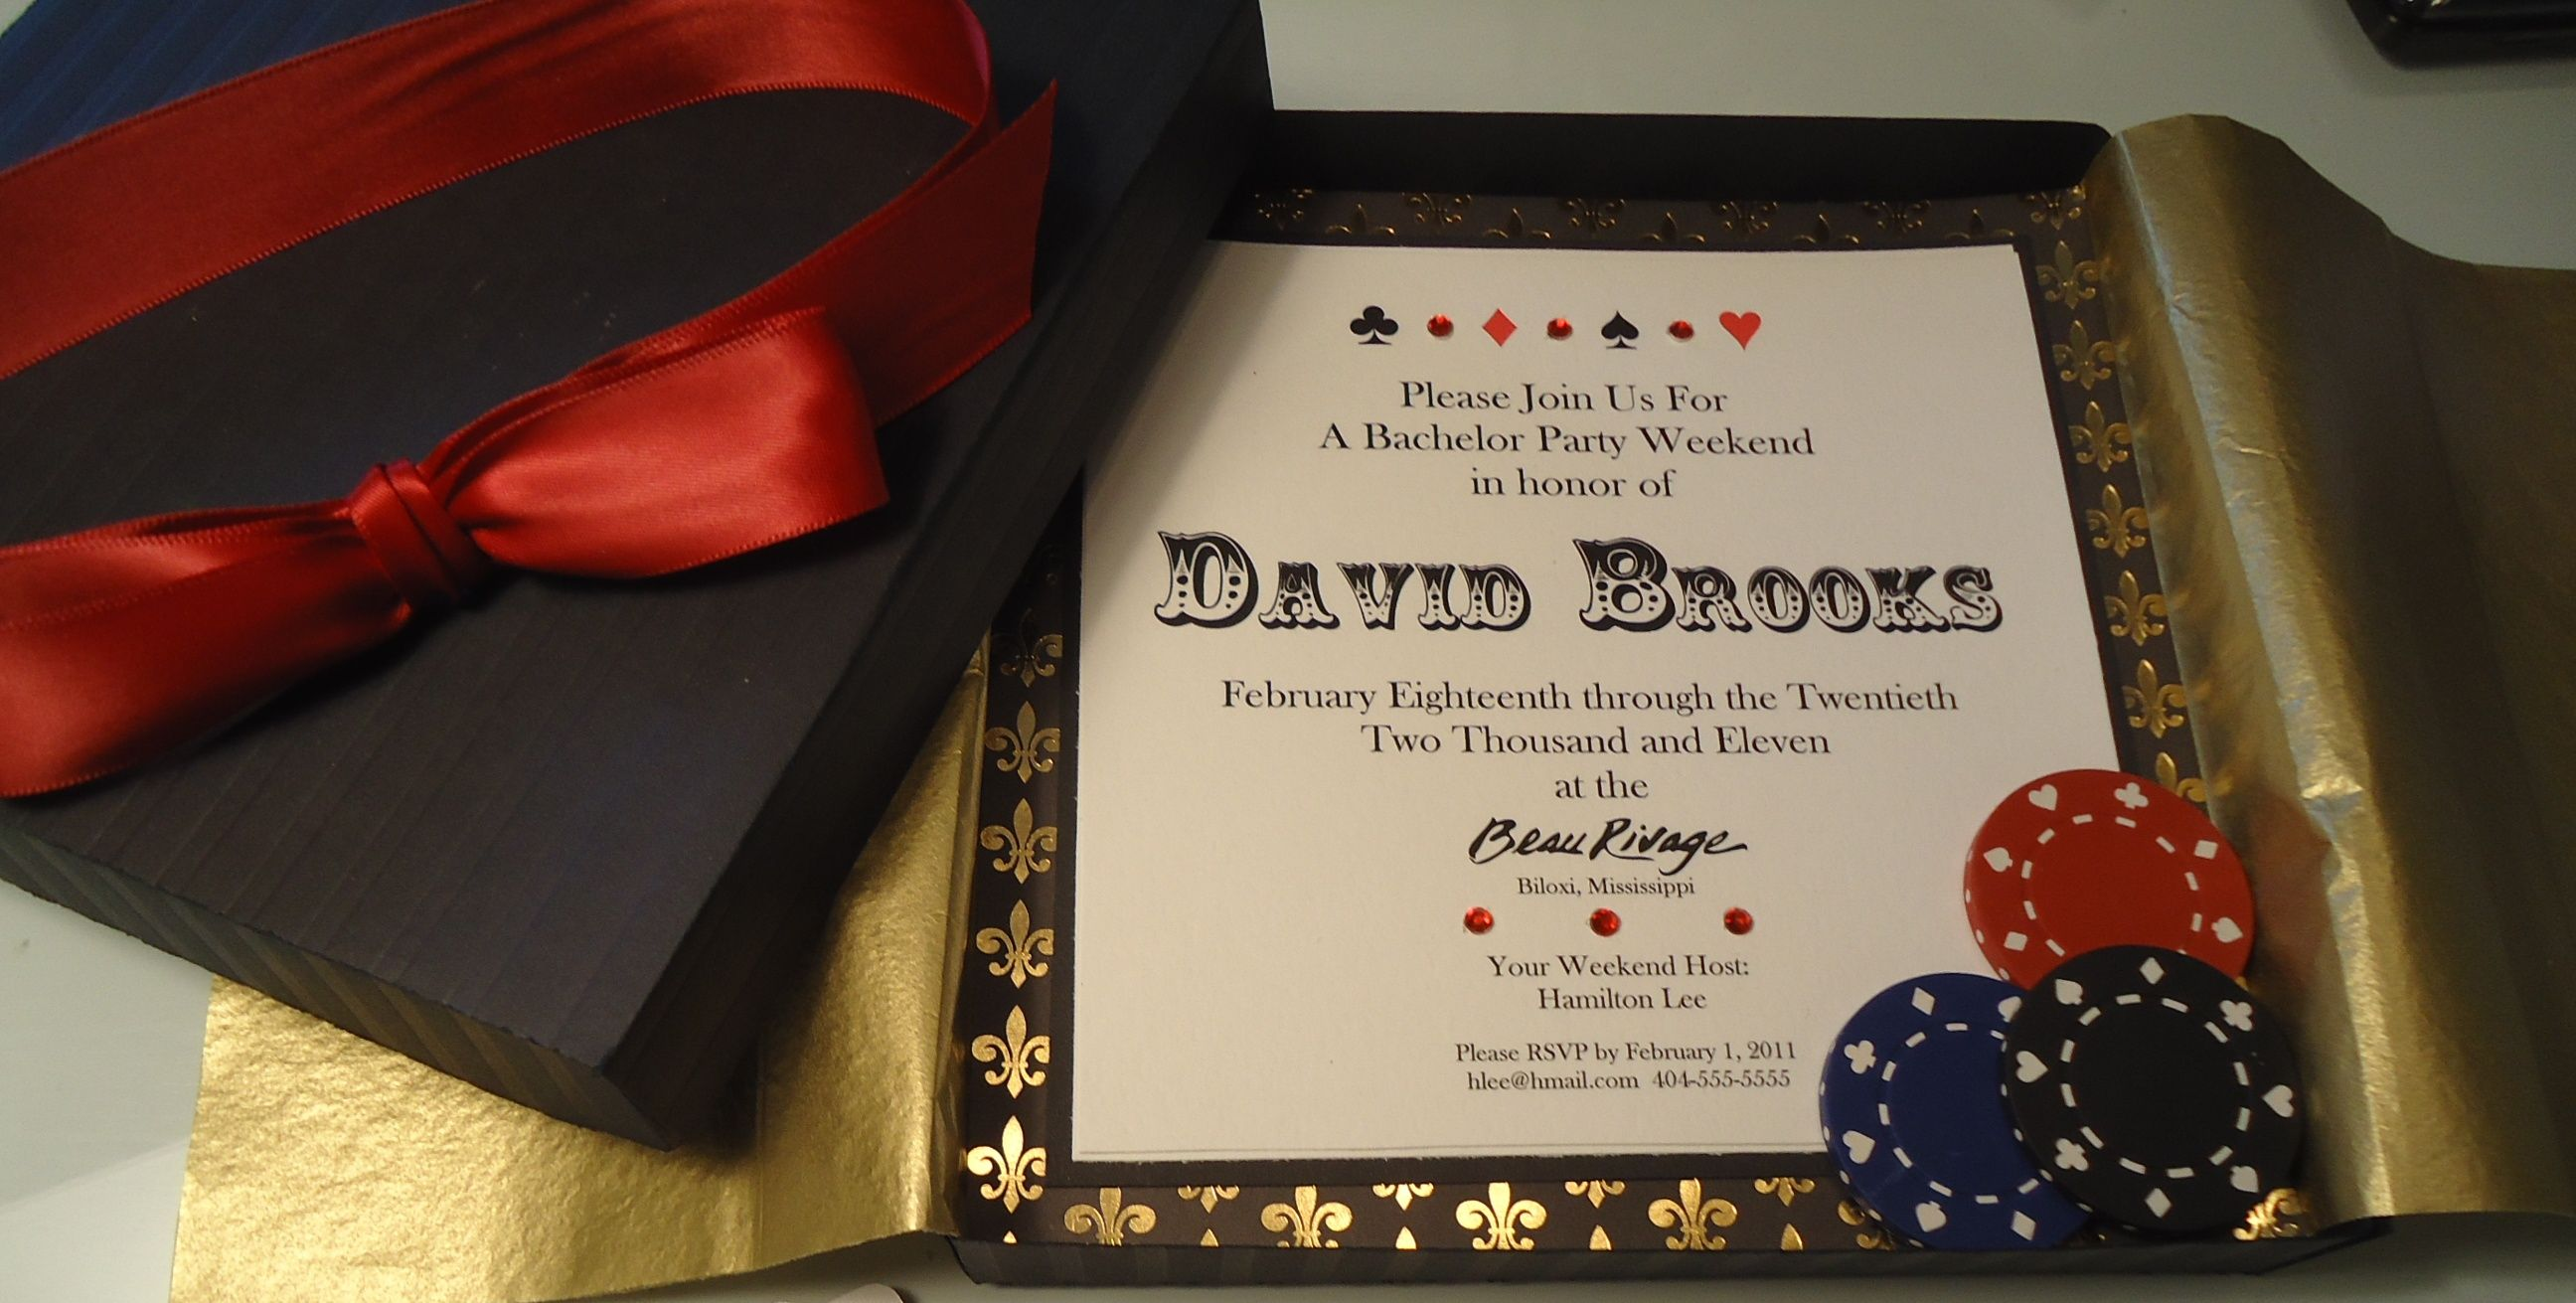 casino party invitations Google Search – Wording for Bachelor Party Invitations